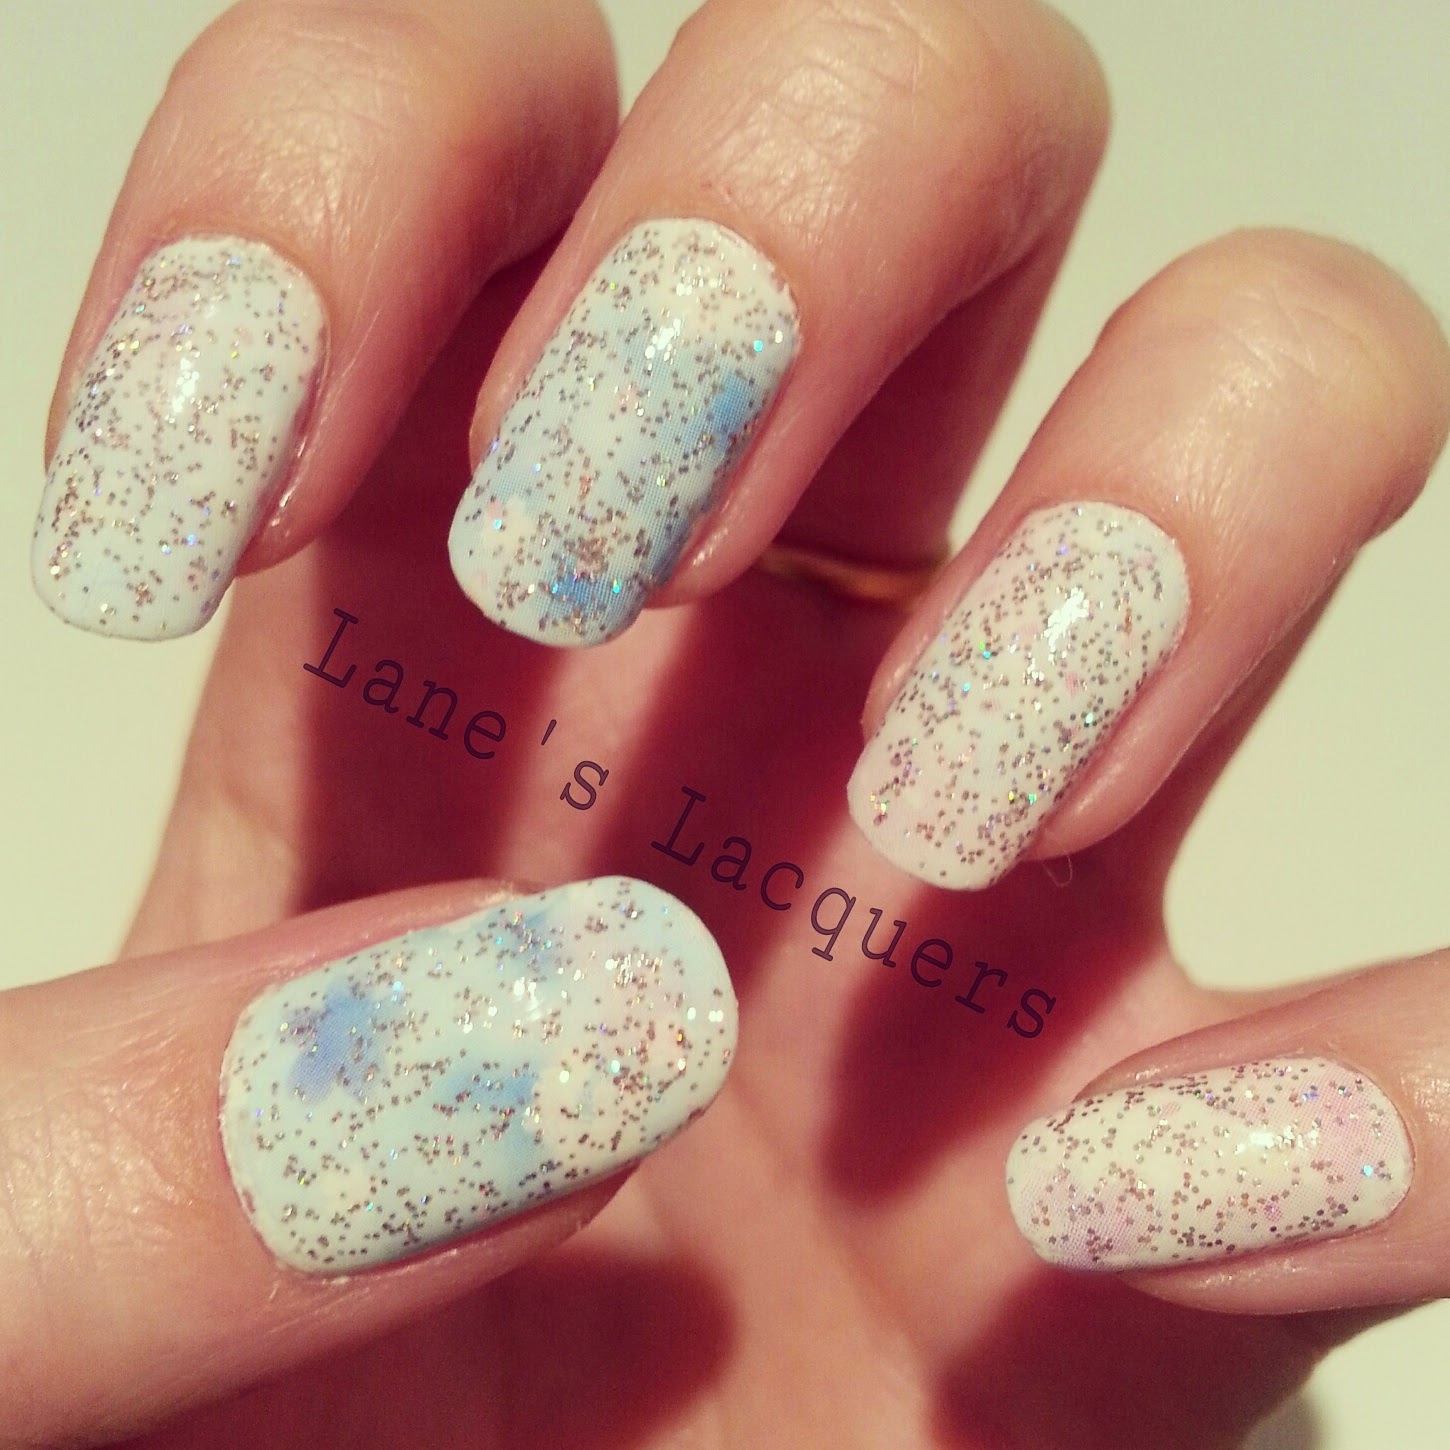 ethereal-nail-art-born-pretty-store-nail-transfers